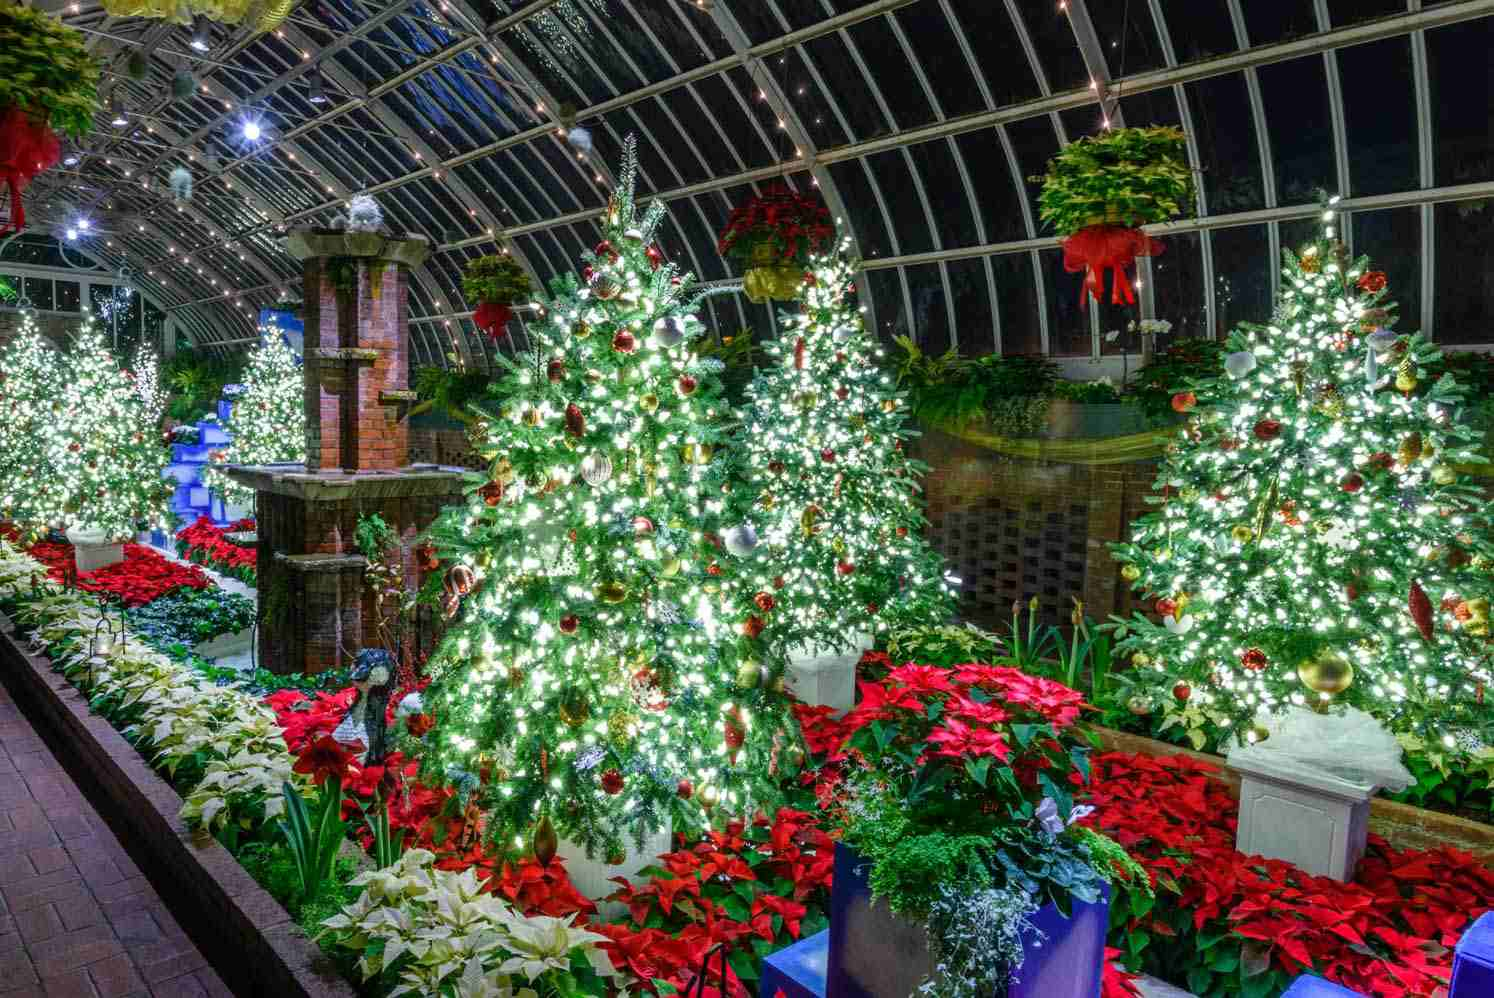 Christmas trees at the Phipps Conservatory and Botanical Gardens